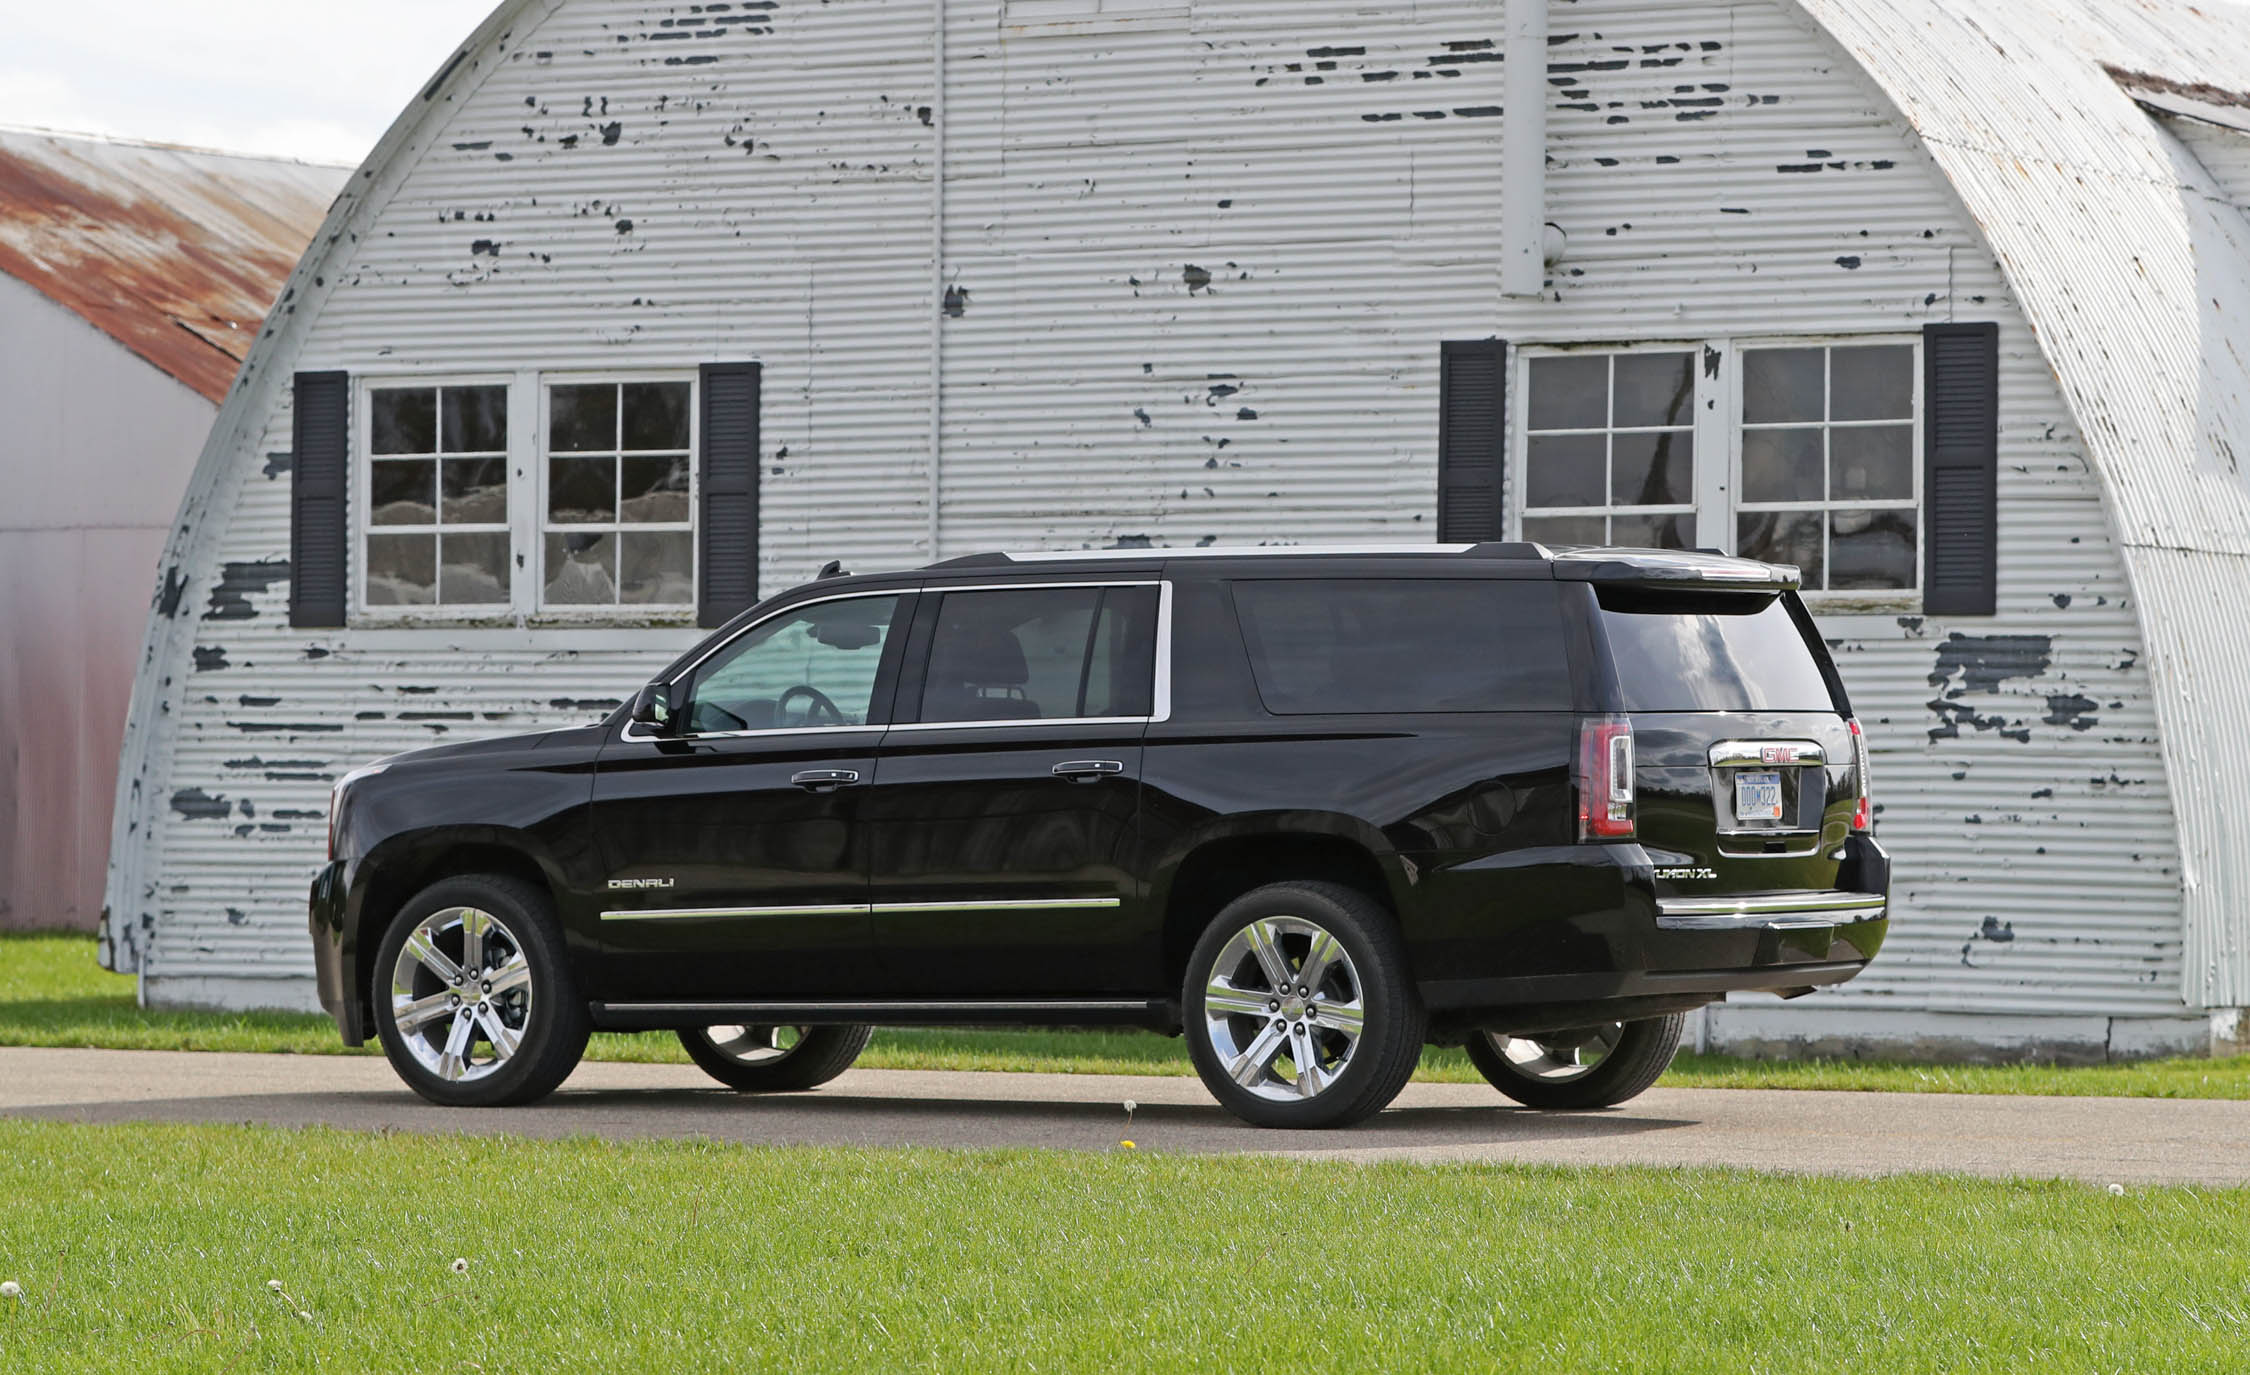 2017 Gmc Yukon Xl Denali Exterior Side Corner (Photo 10 of 26)